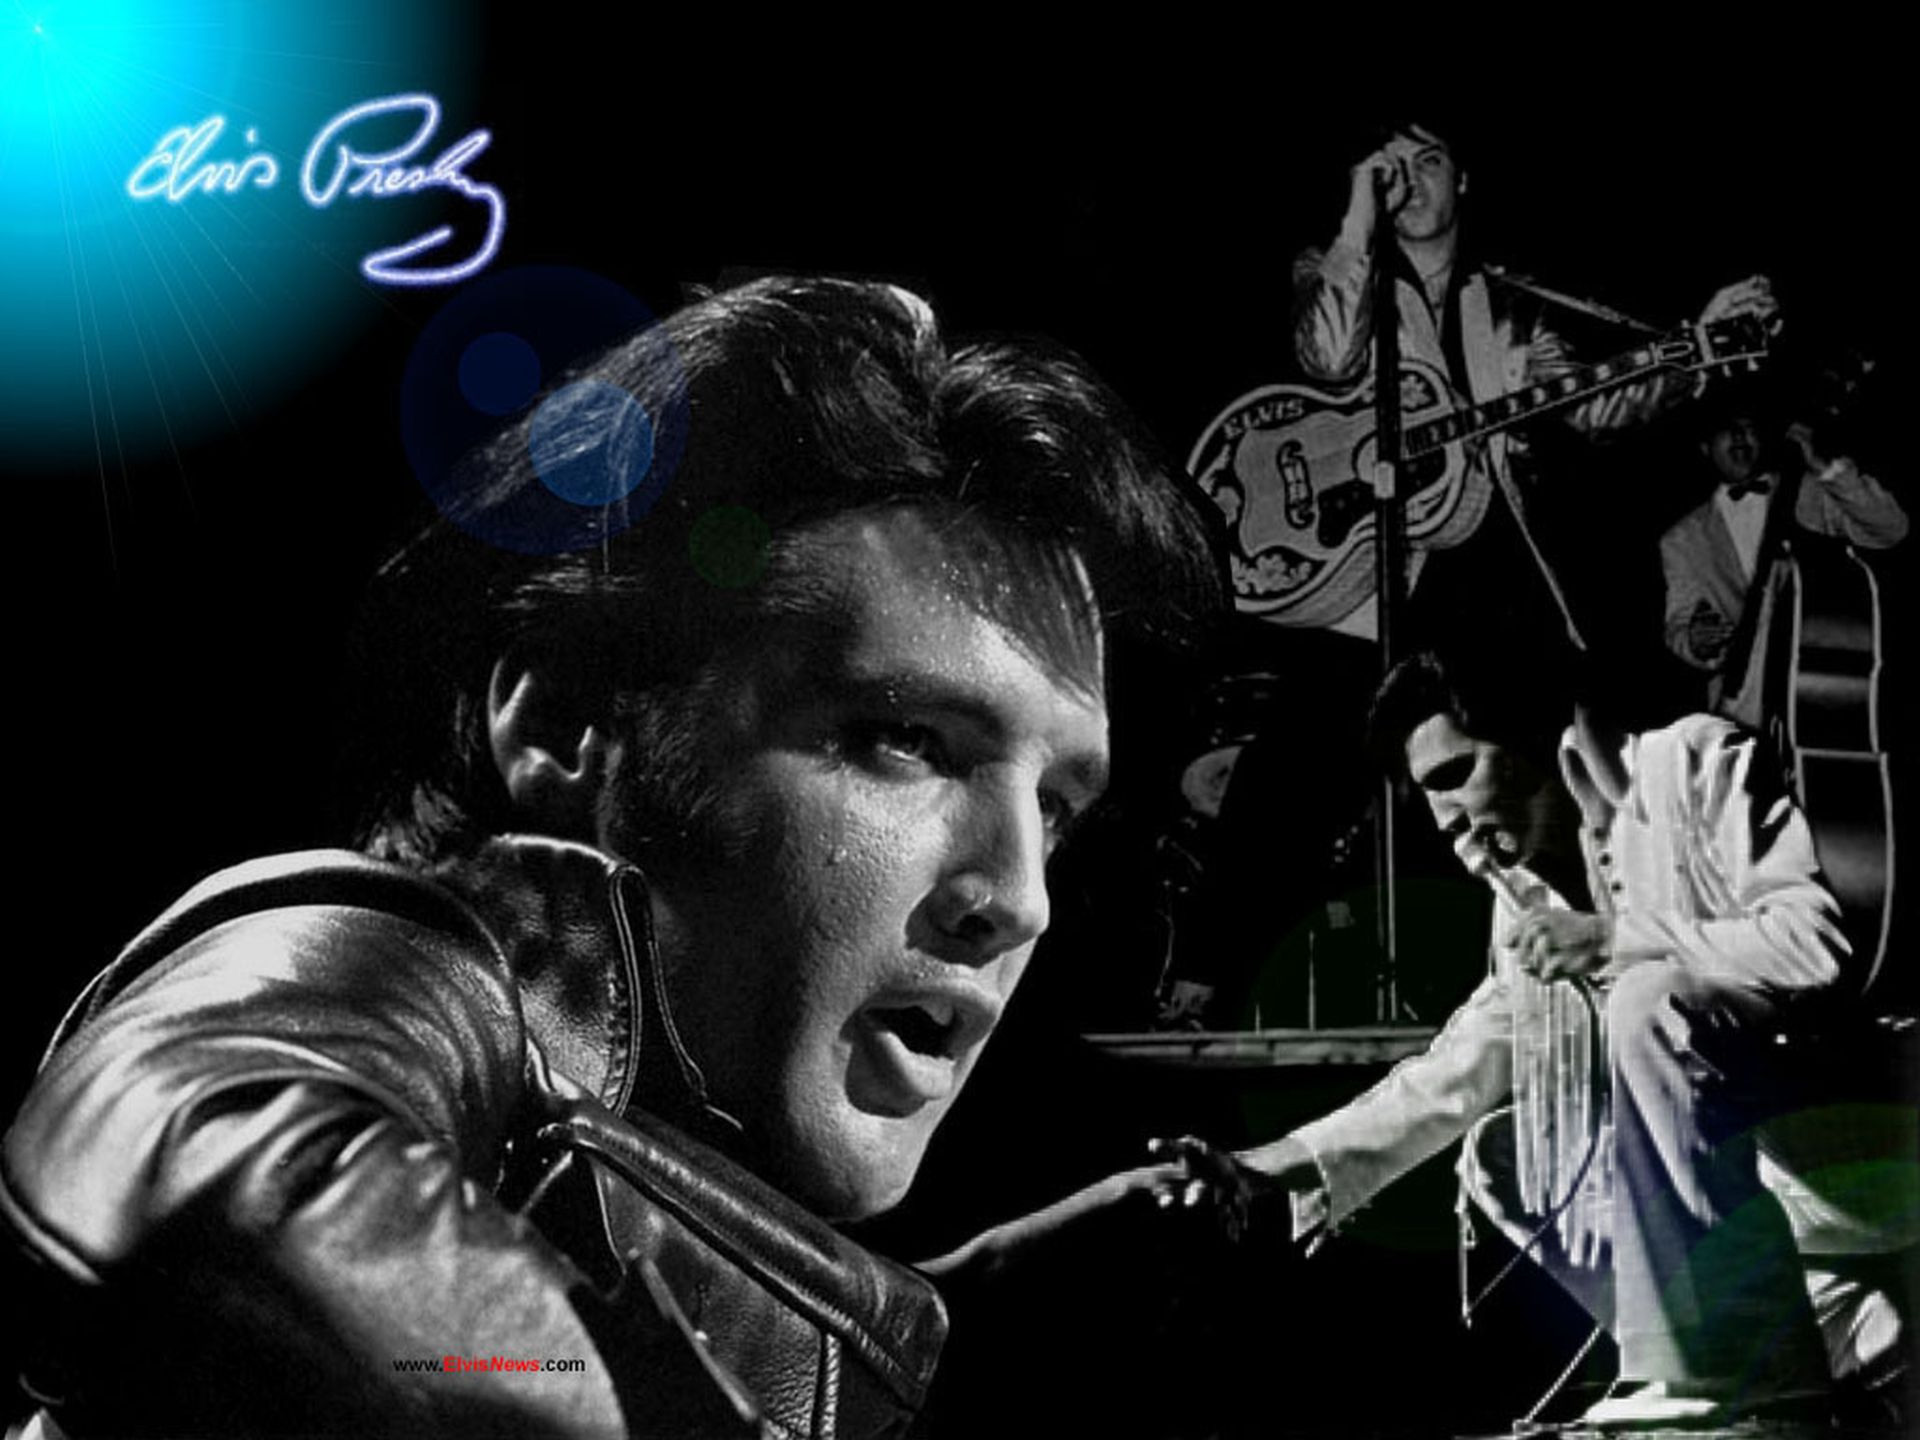 Elvis Presley Wallpapers Pictures Images HD Wallpapers Download Free Images Wallpaper [1000image.com]